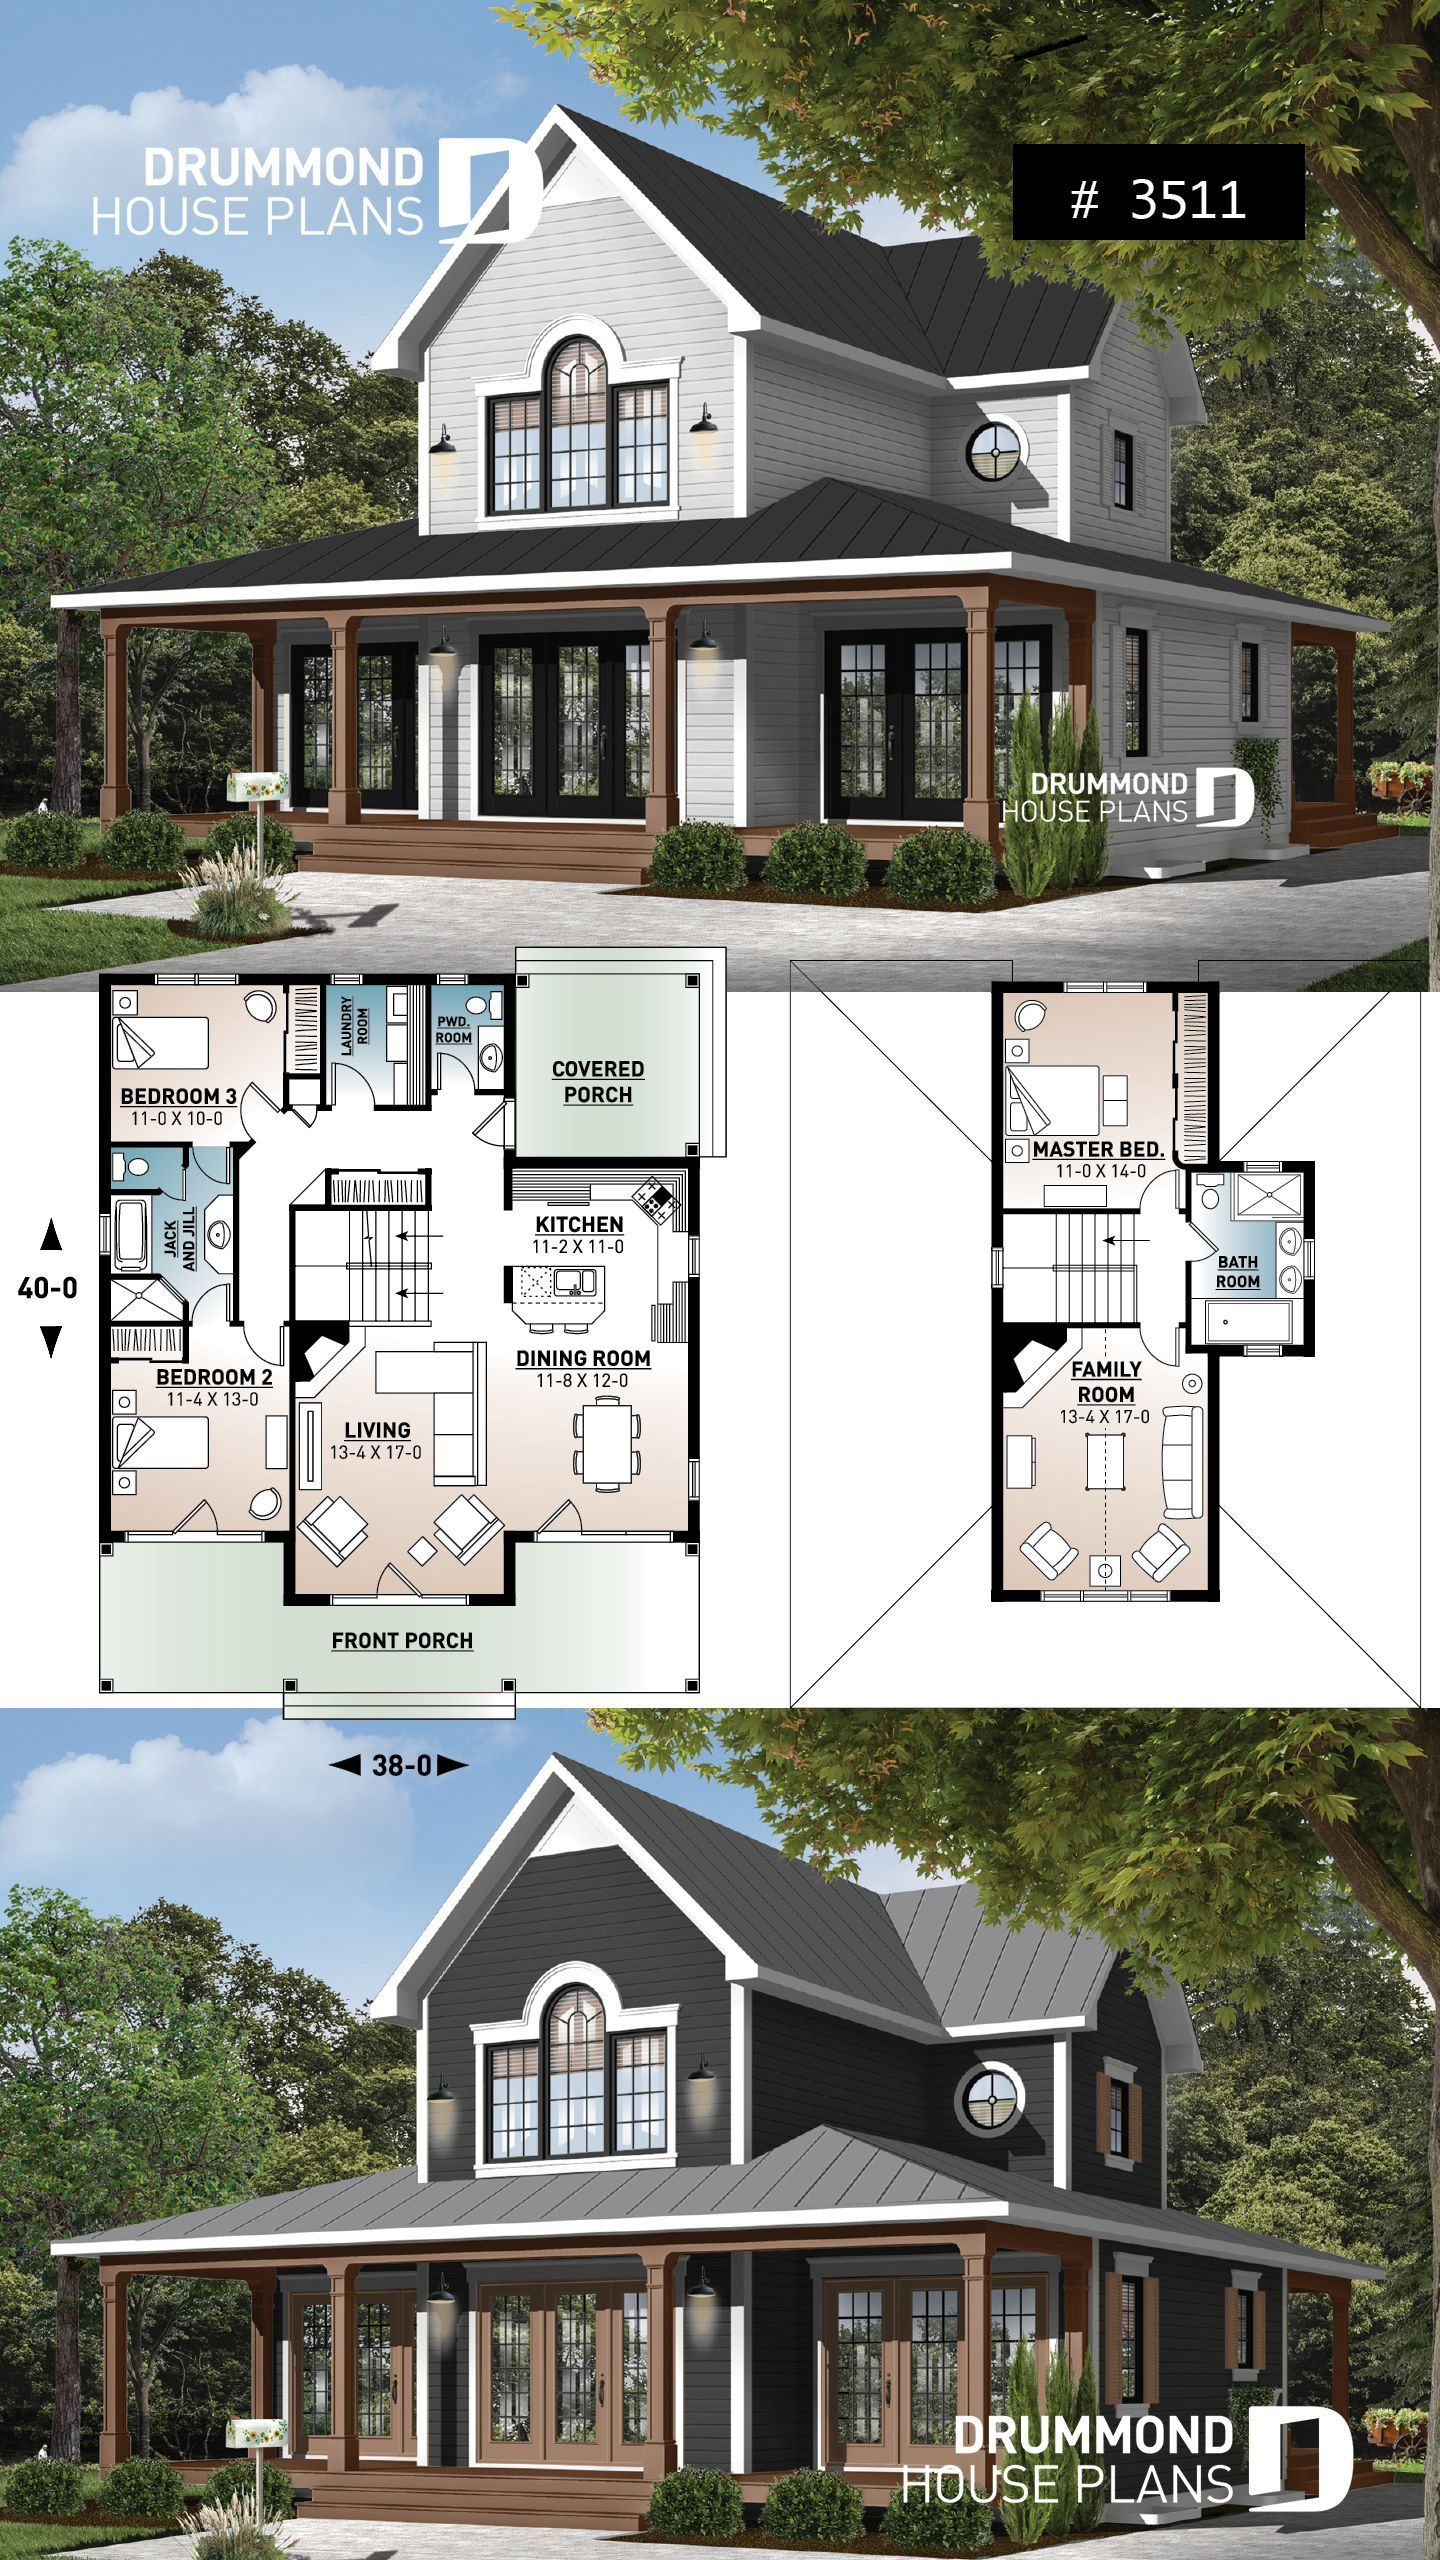 Wraparound Porch Modern Farmhouse With French Doors My Blog Blog Doors Farmhouse French Mod In 2020 Craftsman House Plans Porch House Plans House Plans Farmhouse